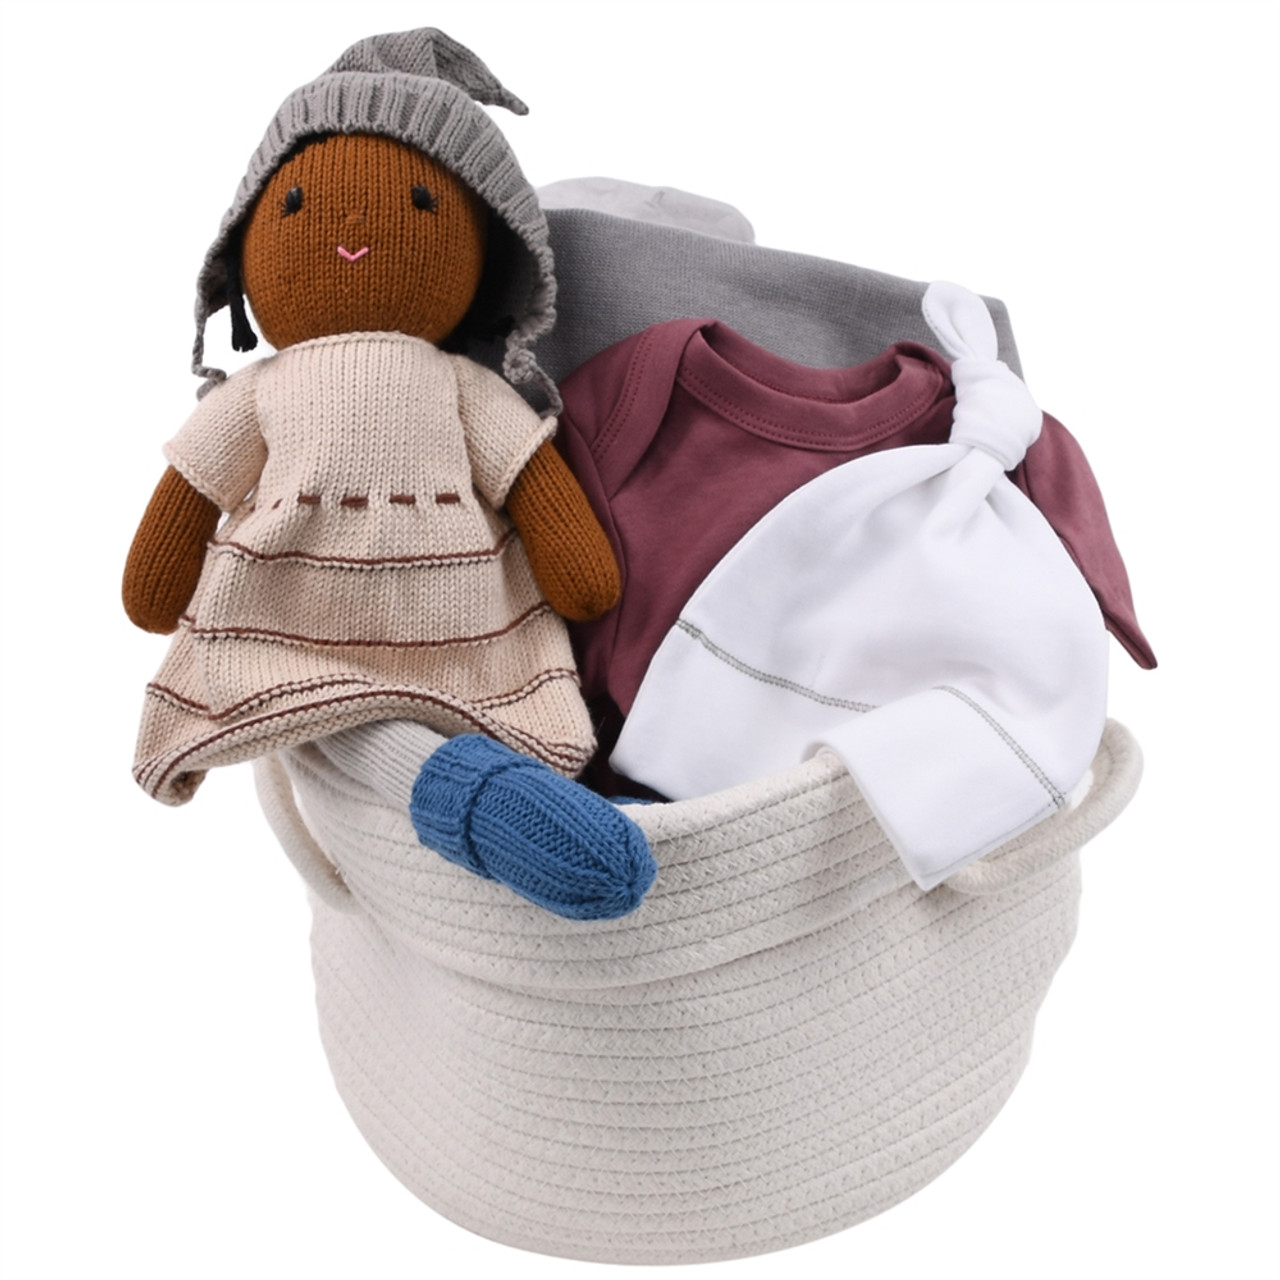 Organic Baby Gifts - Maggie & Me